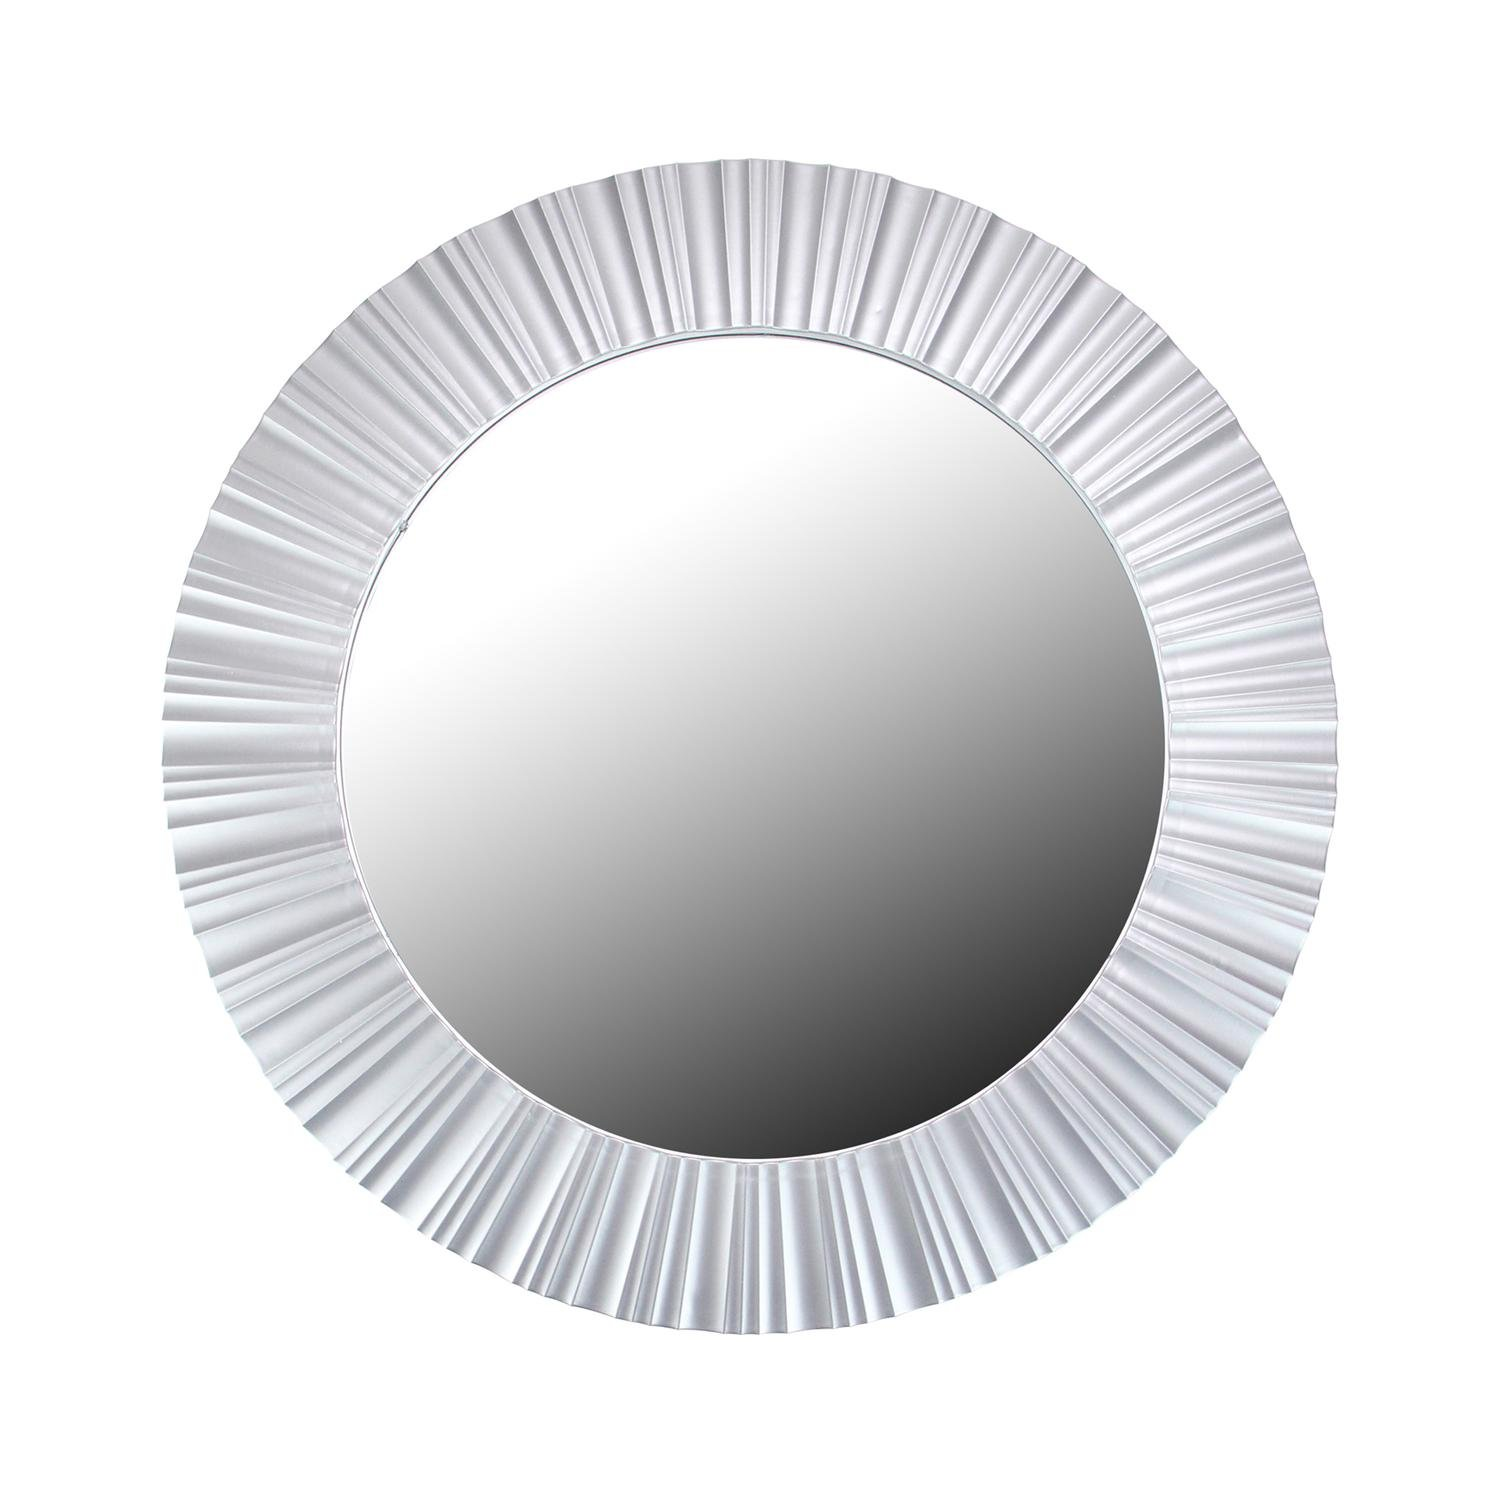 Northlight Simply Elegant Fluted Frame Decorative Round Wall Mirror, 20'', Silver